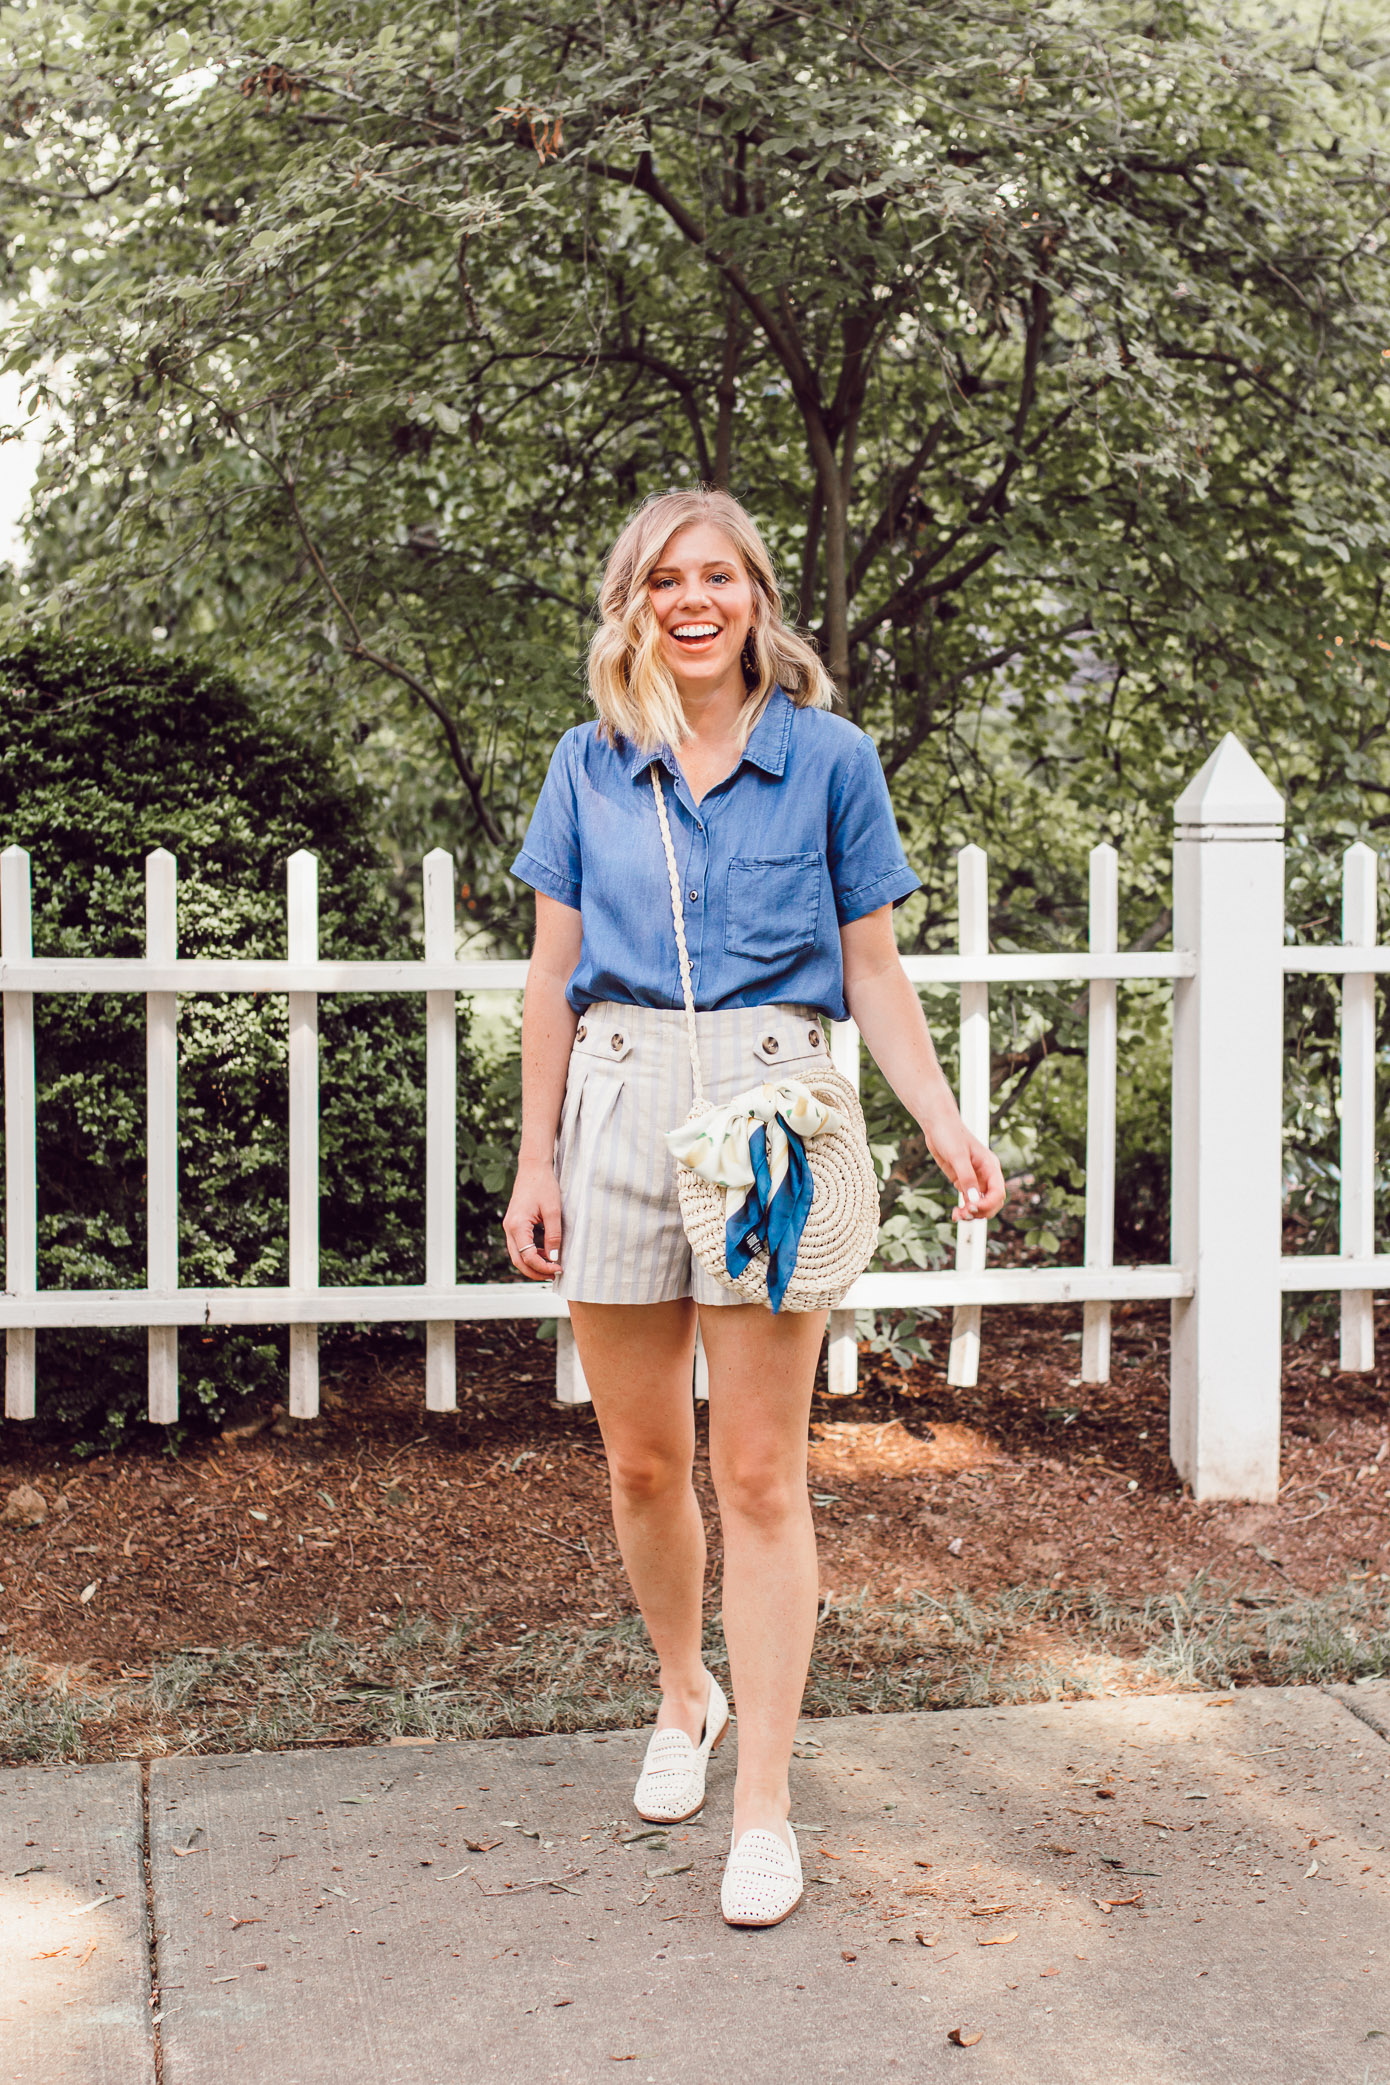 Affordable Casual Summer Style | Chambray Shirt, Stripe Linen Shorts, Straw Crossbody Bag under $25 | Louella Reese